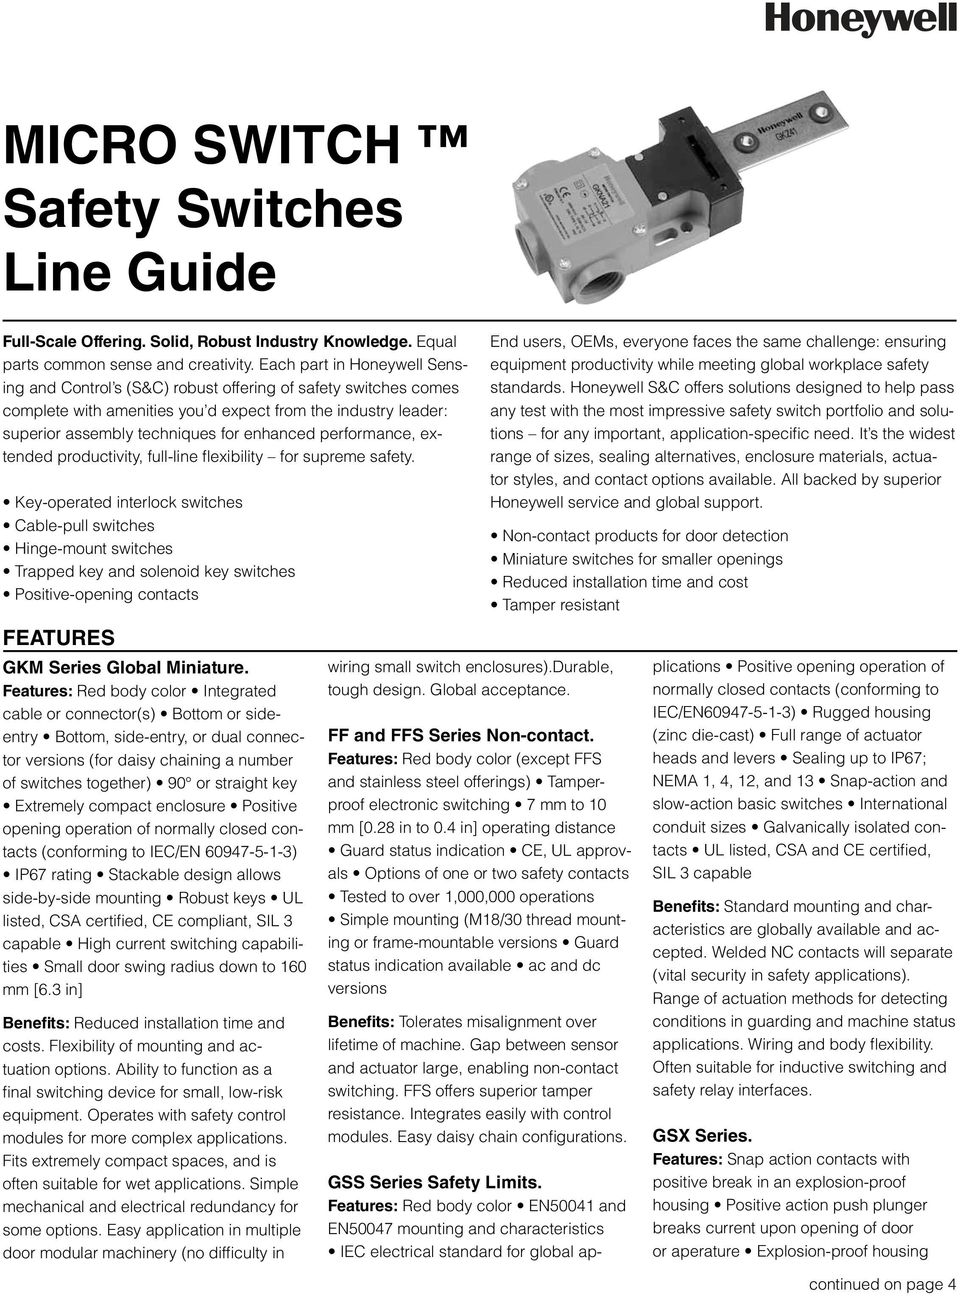 Micro Switch Safety Switches Line Guide Pdf Operation Steel Wire Hinge Lever Type 110